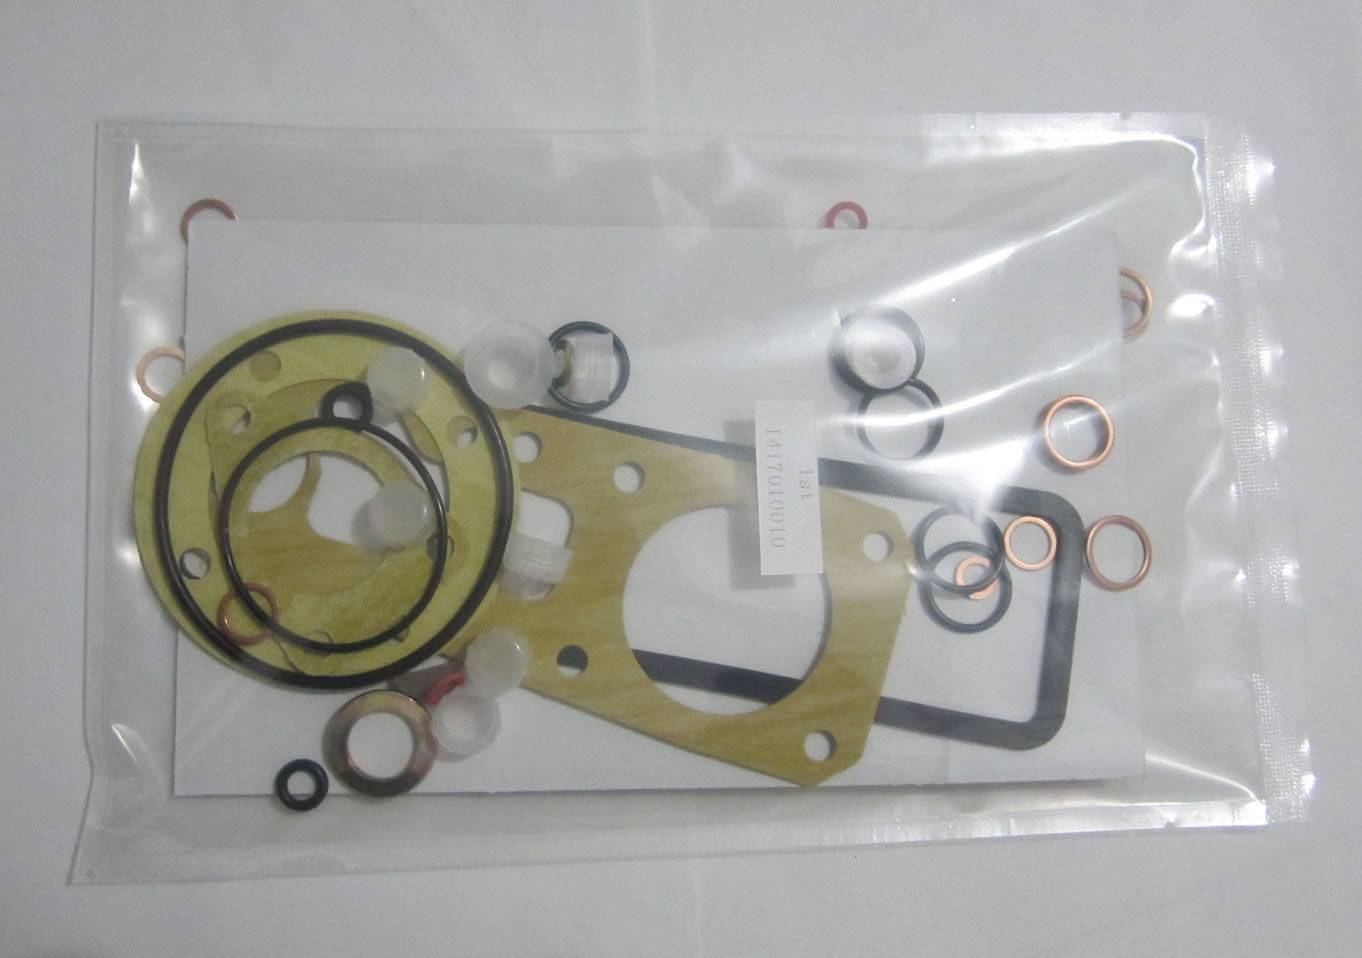 Kinds Of Quality Engine Repairing Kits 2417010010